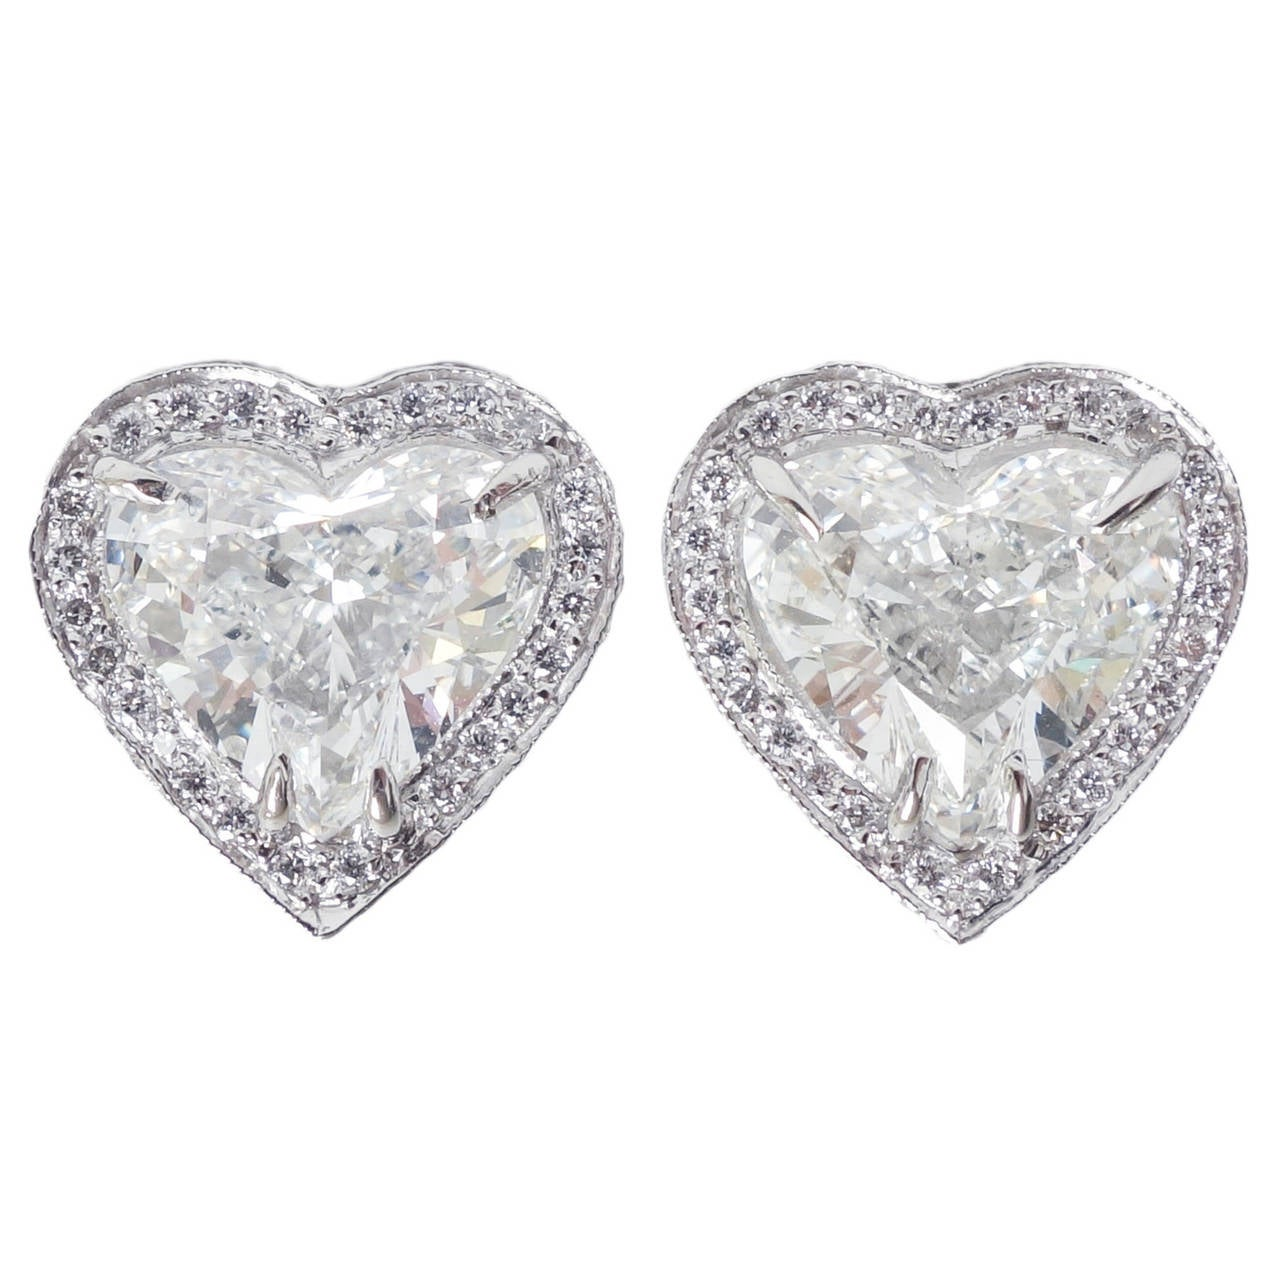 own jewelry stud diamond in shape earrings white heart prongs with angle gold four design p shaped settings your